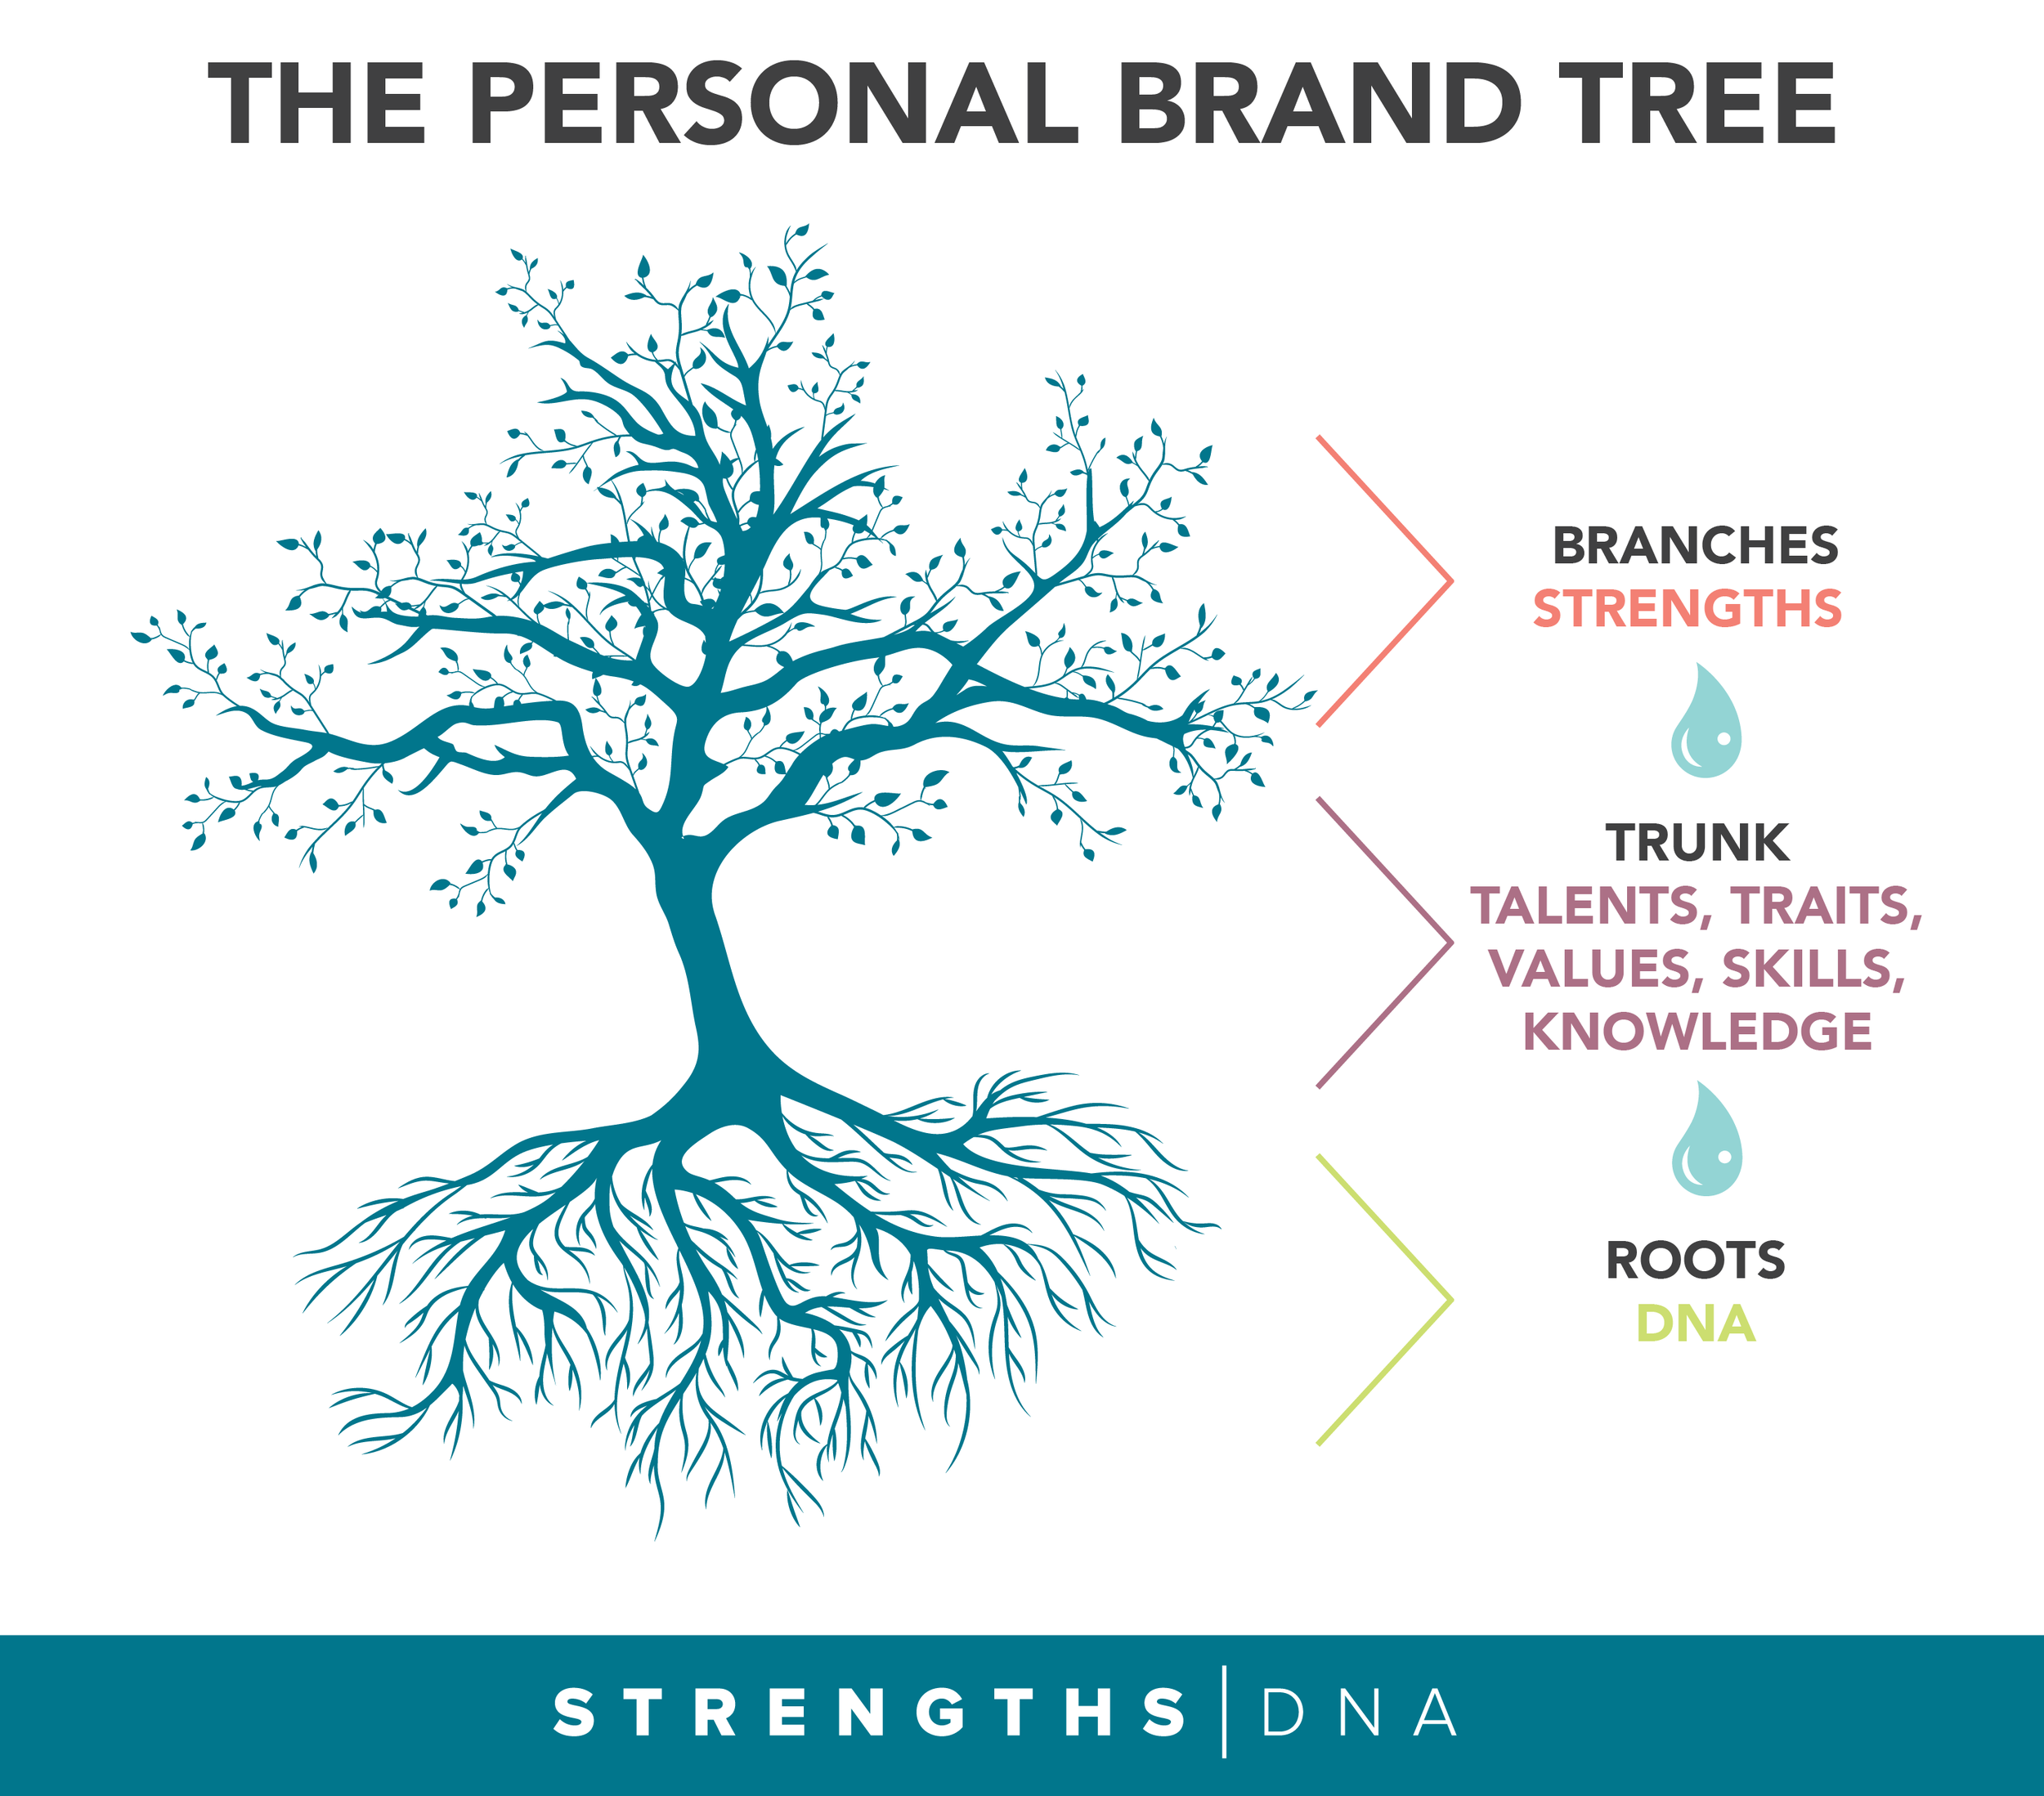 The Personal Brand Tree - The roots are your DNA. The truck is the foundation to which the branches grow from (your authentic self). The branches are your strengths.